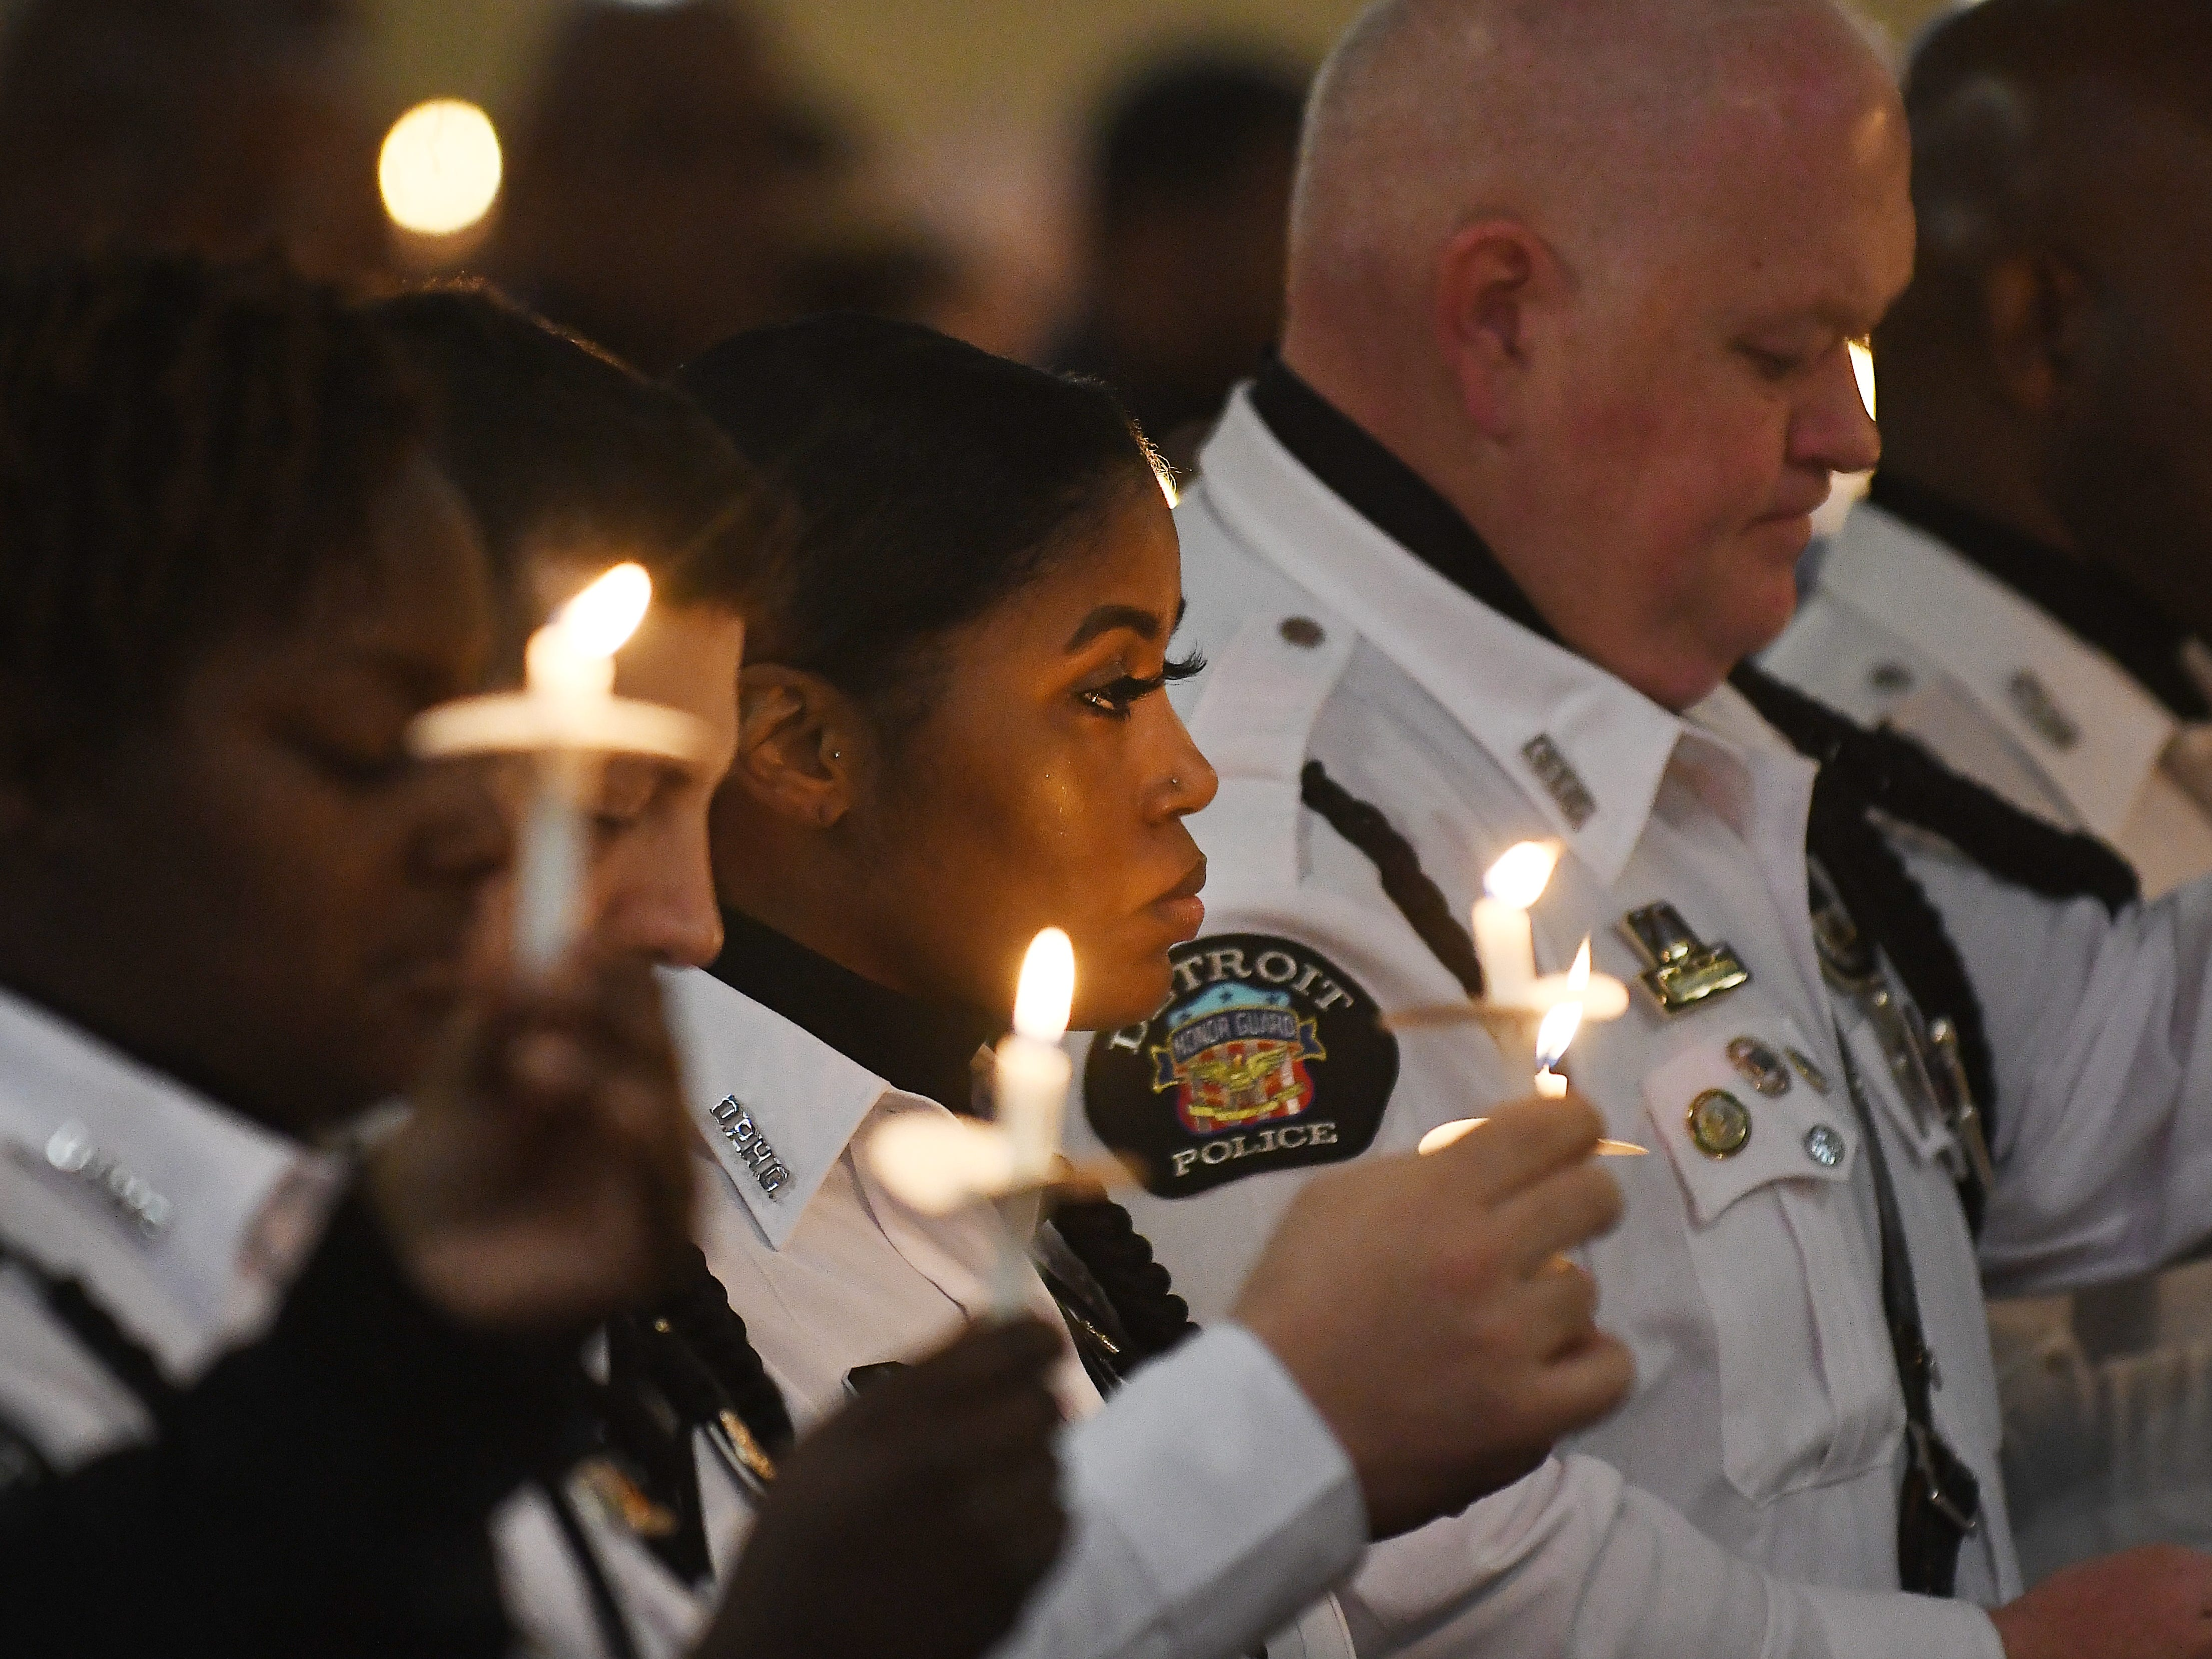 Officer Brittney Williams and members of the Detroit Police Honor Guard raise candles during the reading of the Memorial Roll Cal 2019 during the 46th Annual Detroit Police Interfaith Memorial Service and march to honor fallen officers at Old St. Mary's Church in Detroit, Michigan on May 3, 2019.